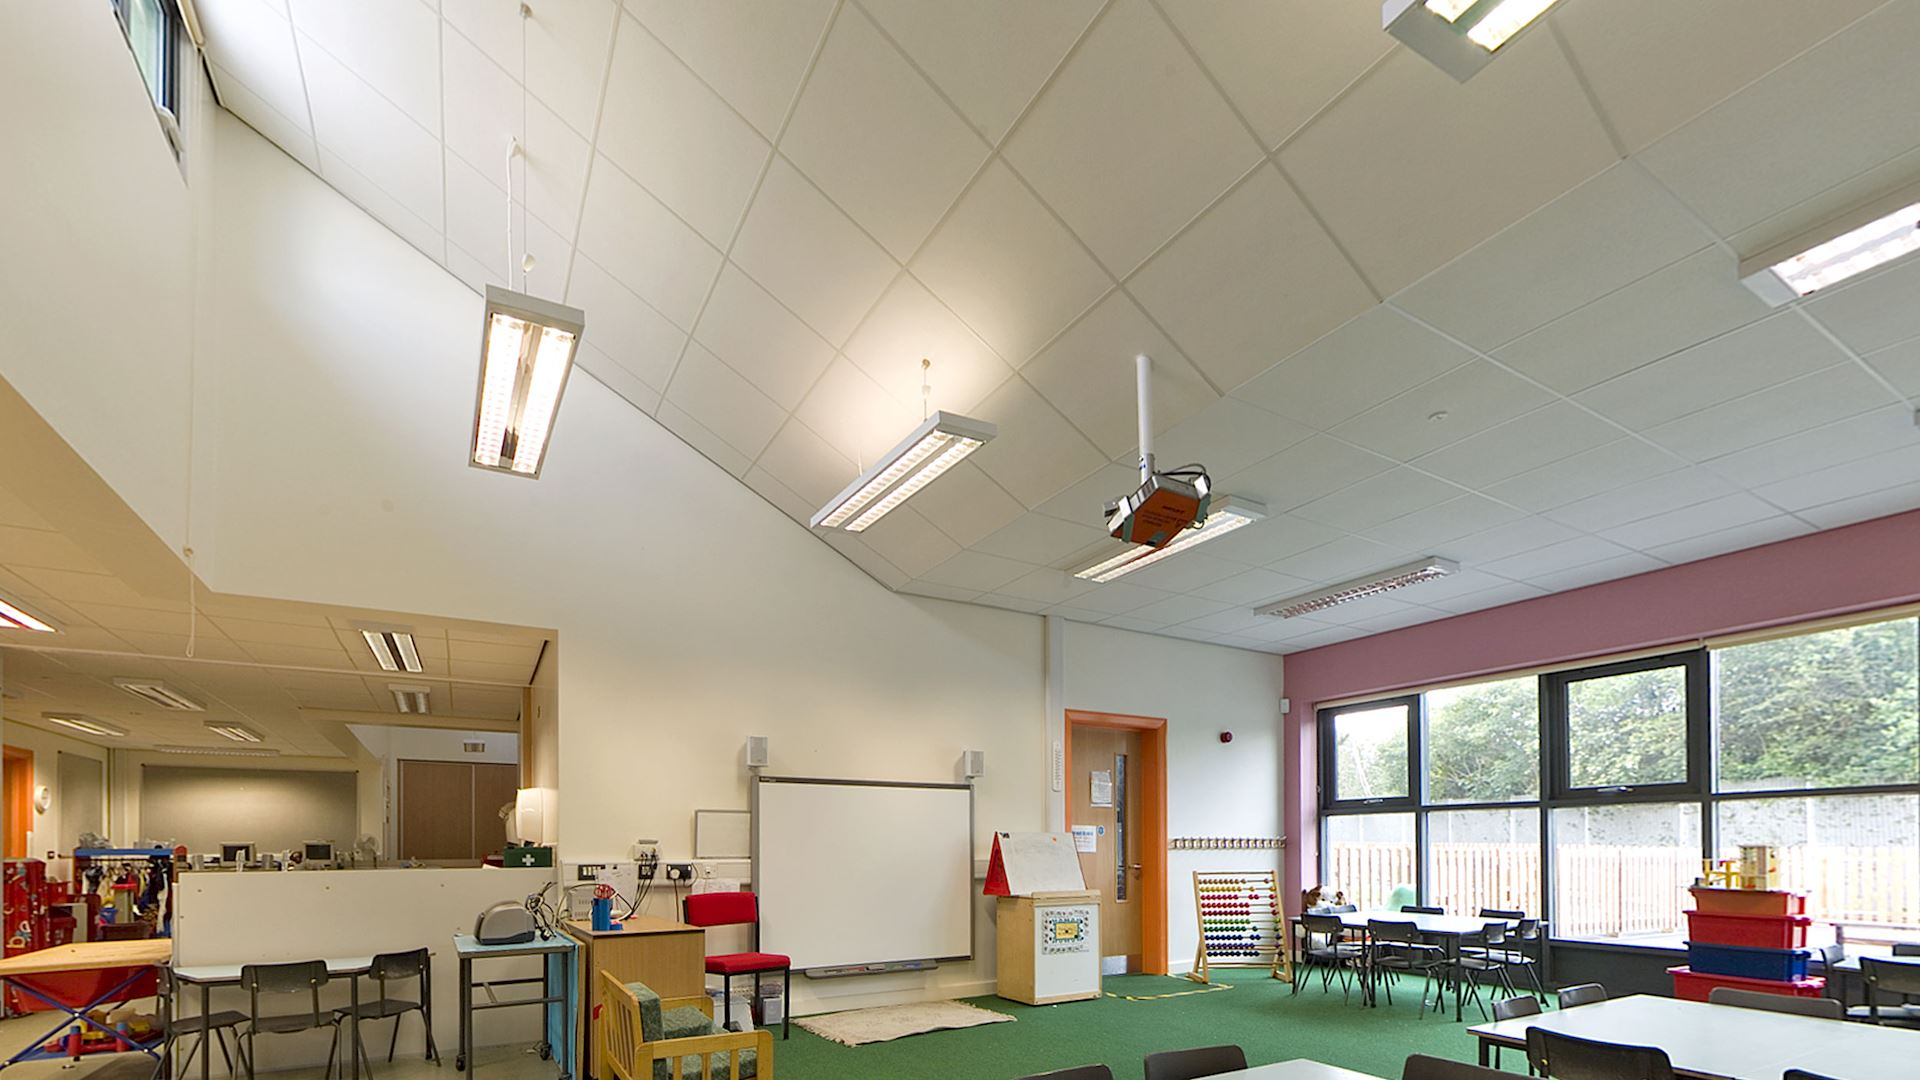 Acoustic ceiling in school with Rockfon Scholar ceiling tiles (BB93 Acoustics for Schools)